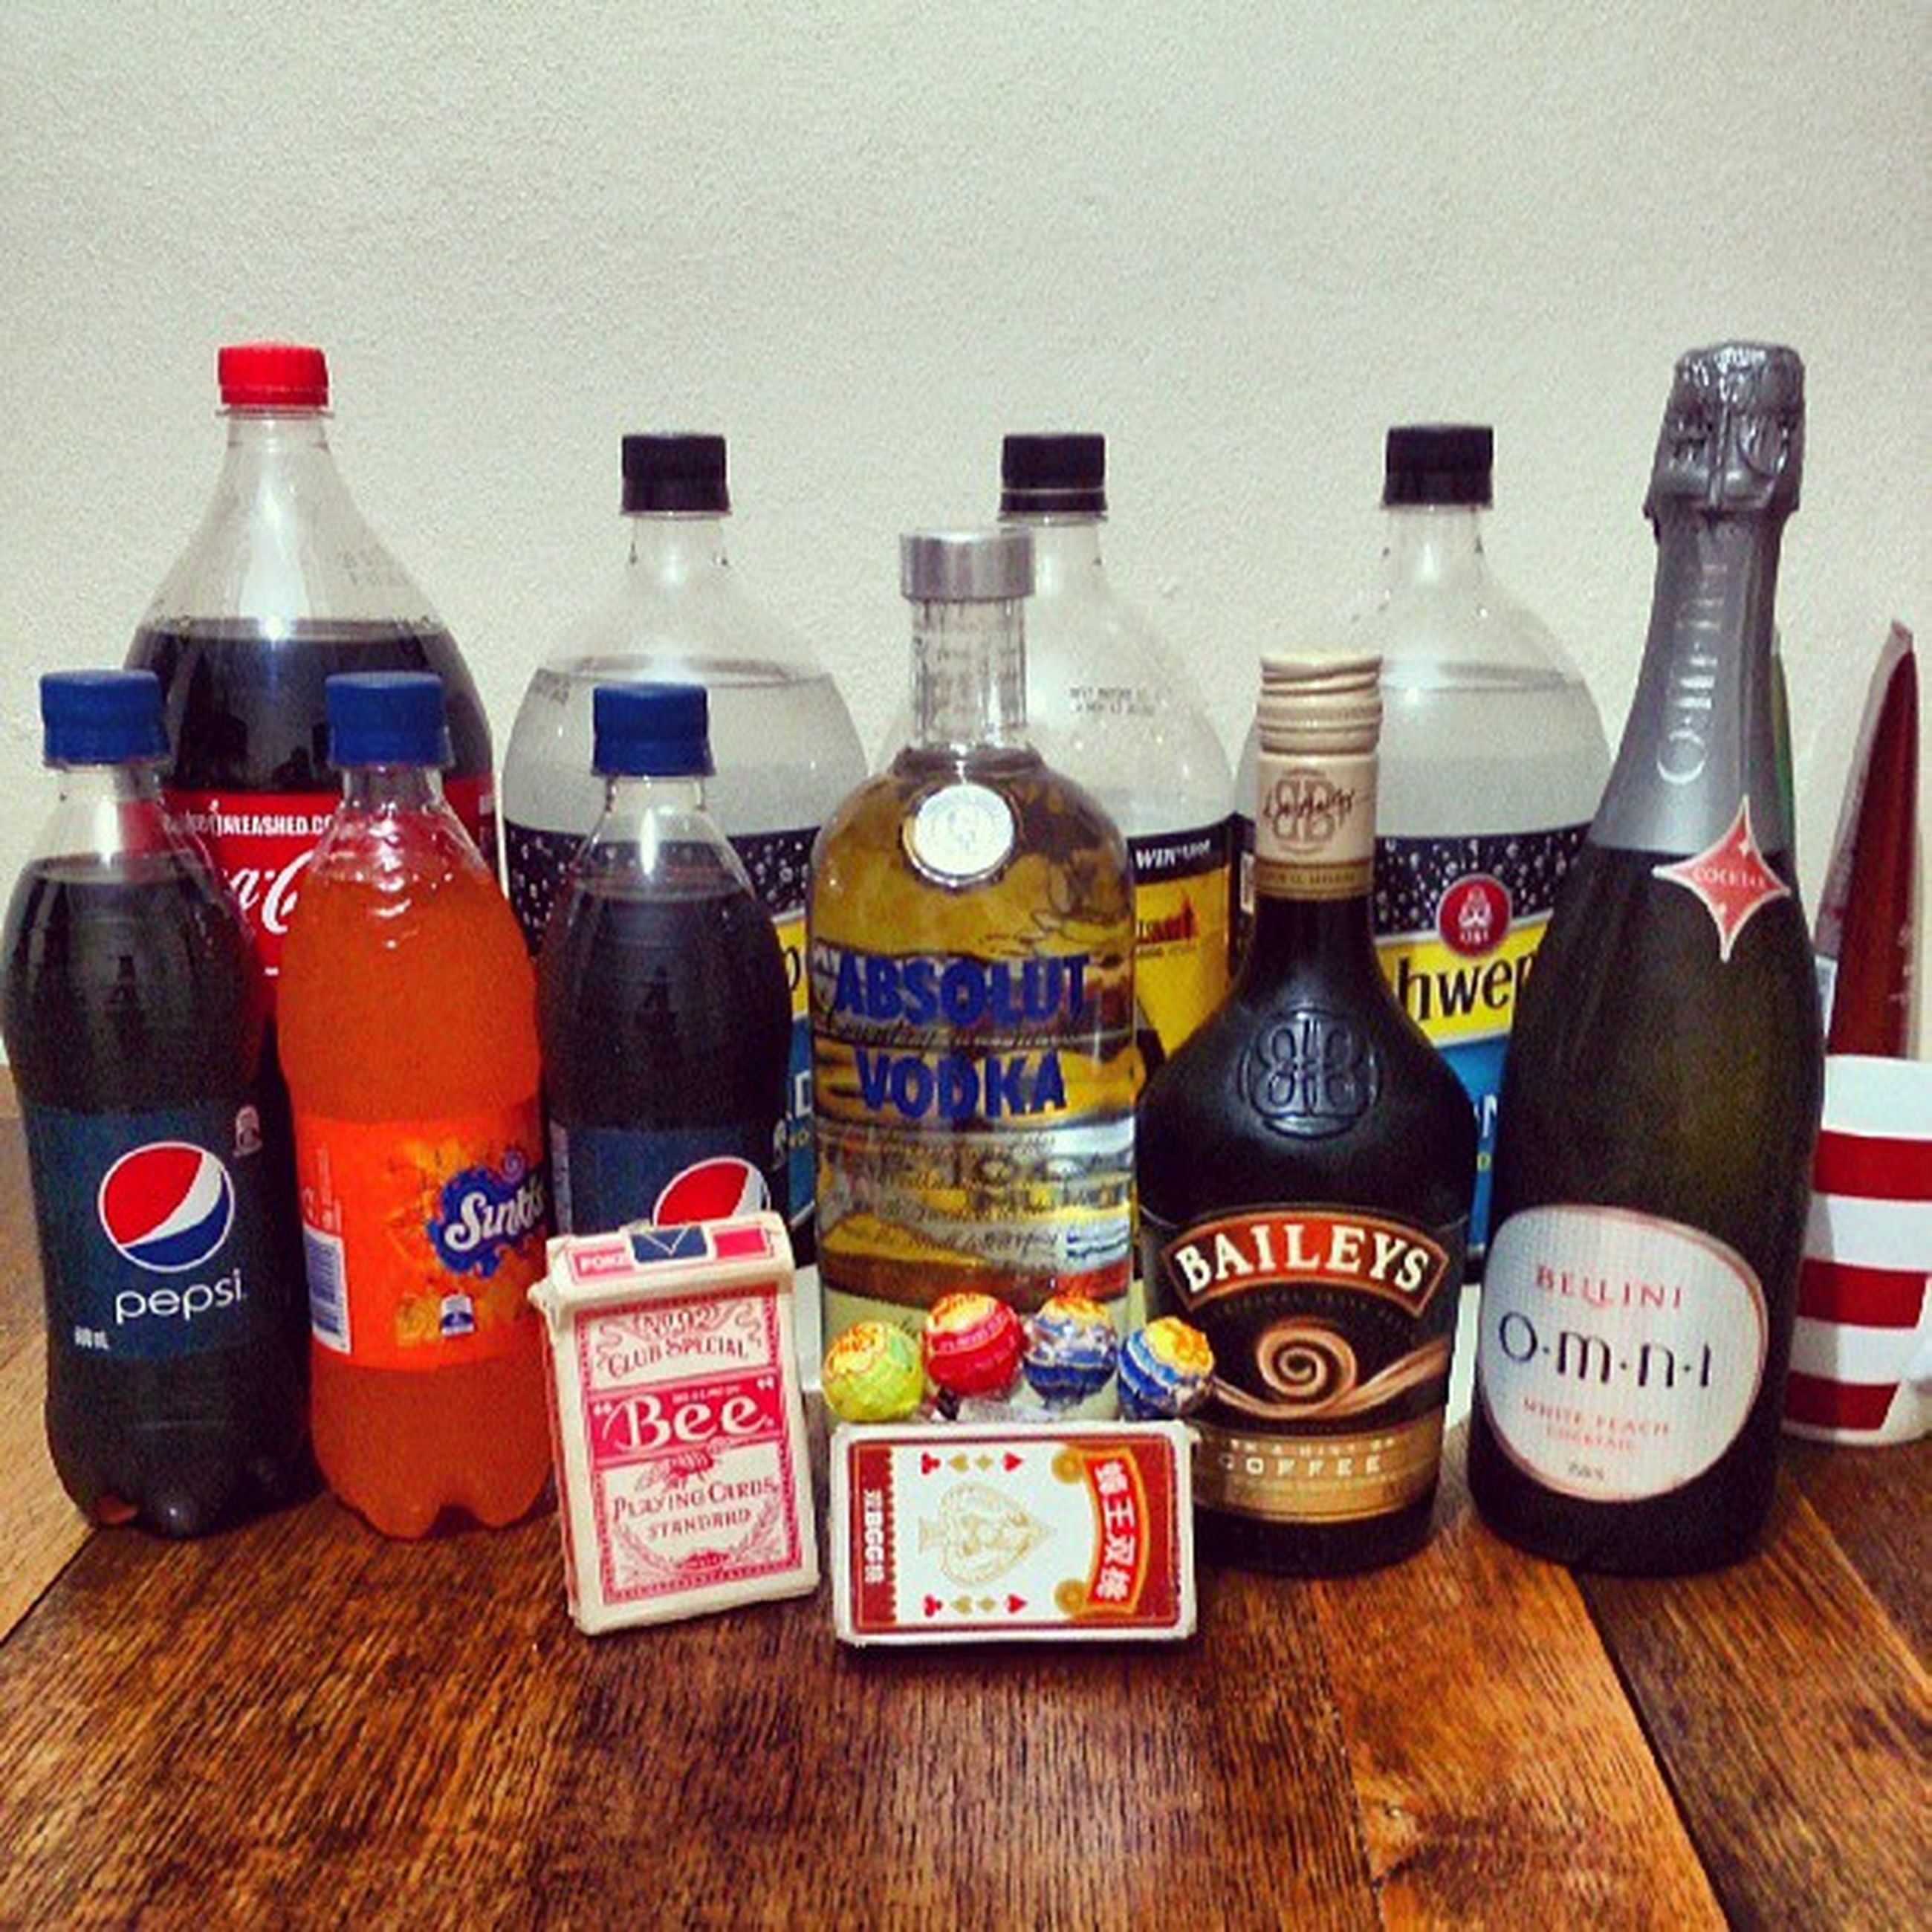 indoors, still life, variation, table, food and drink, choice, large group of objects, arrangement, bottle, wood - material, multi colored, order, side by side, abundance, close-up, collection, freshness, drink, no people, group of objects